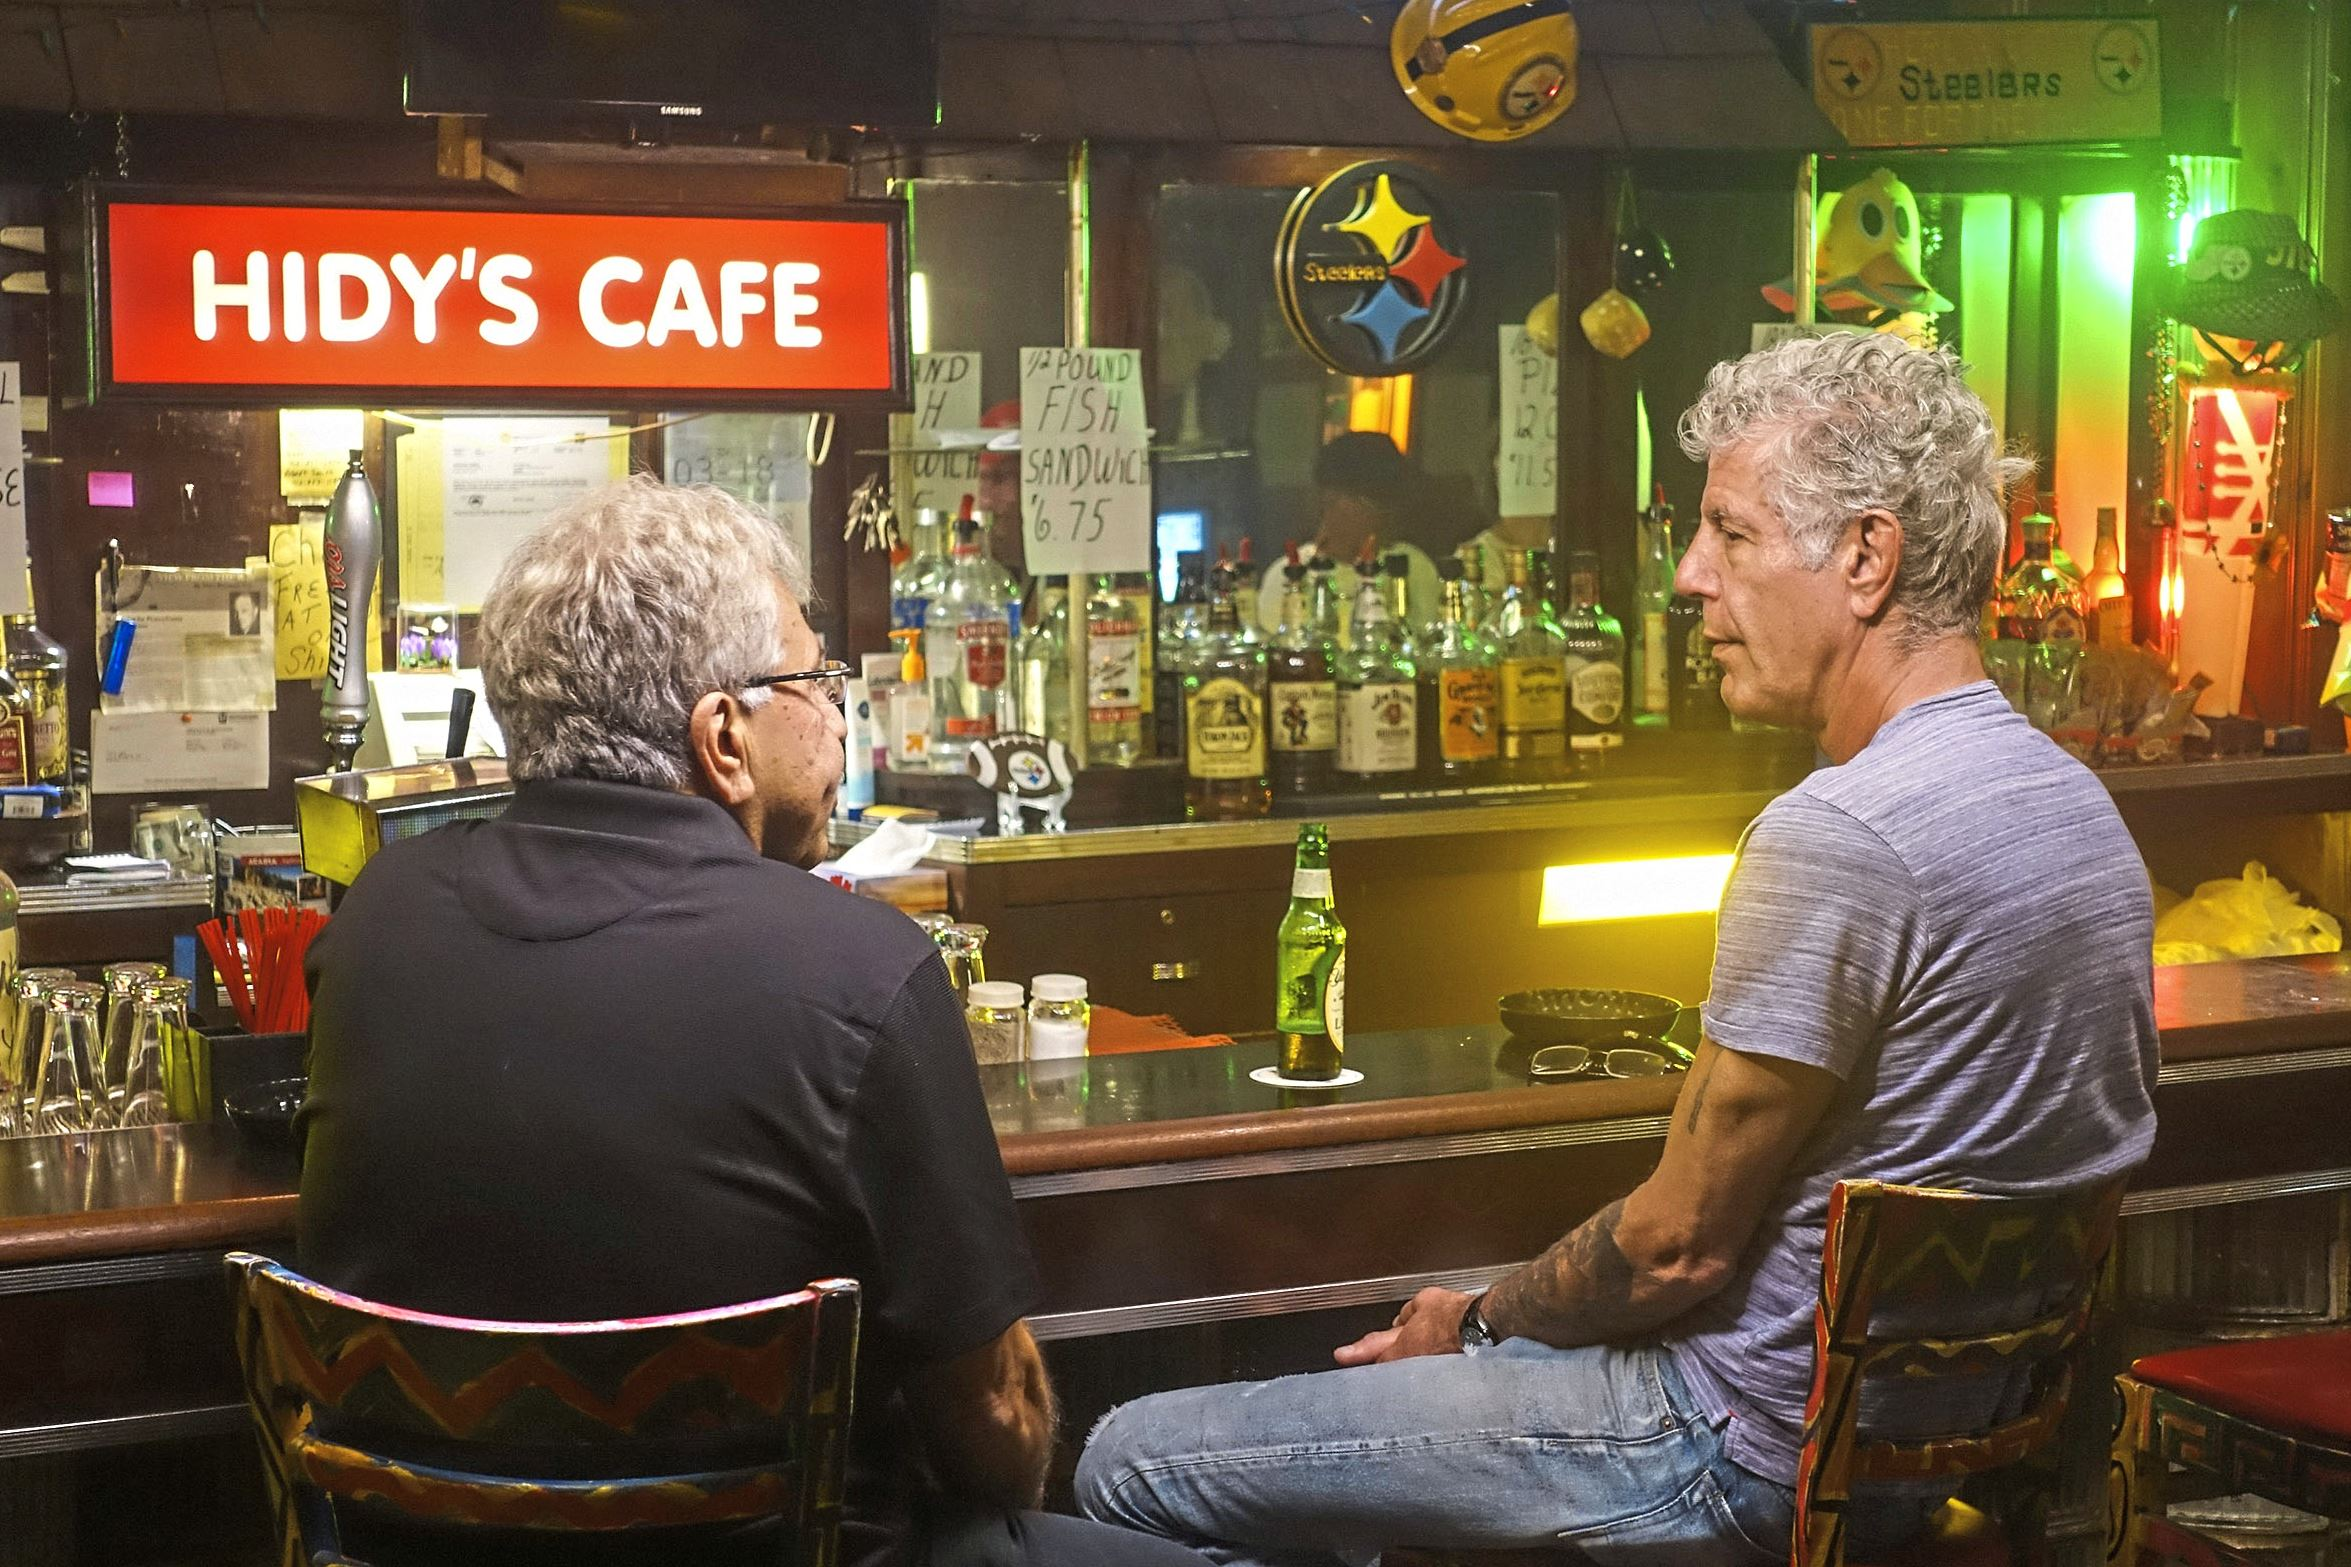 """bourdain pittsburgh buba-1 Anthony Bourdain has a drink with local filmmaker Tony Buba at Hidy's Cafe in Braddock while filming the Pittsburgh episode of the CNN show """"Parts Unknown."""""""